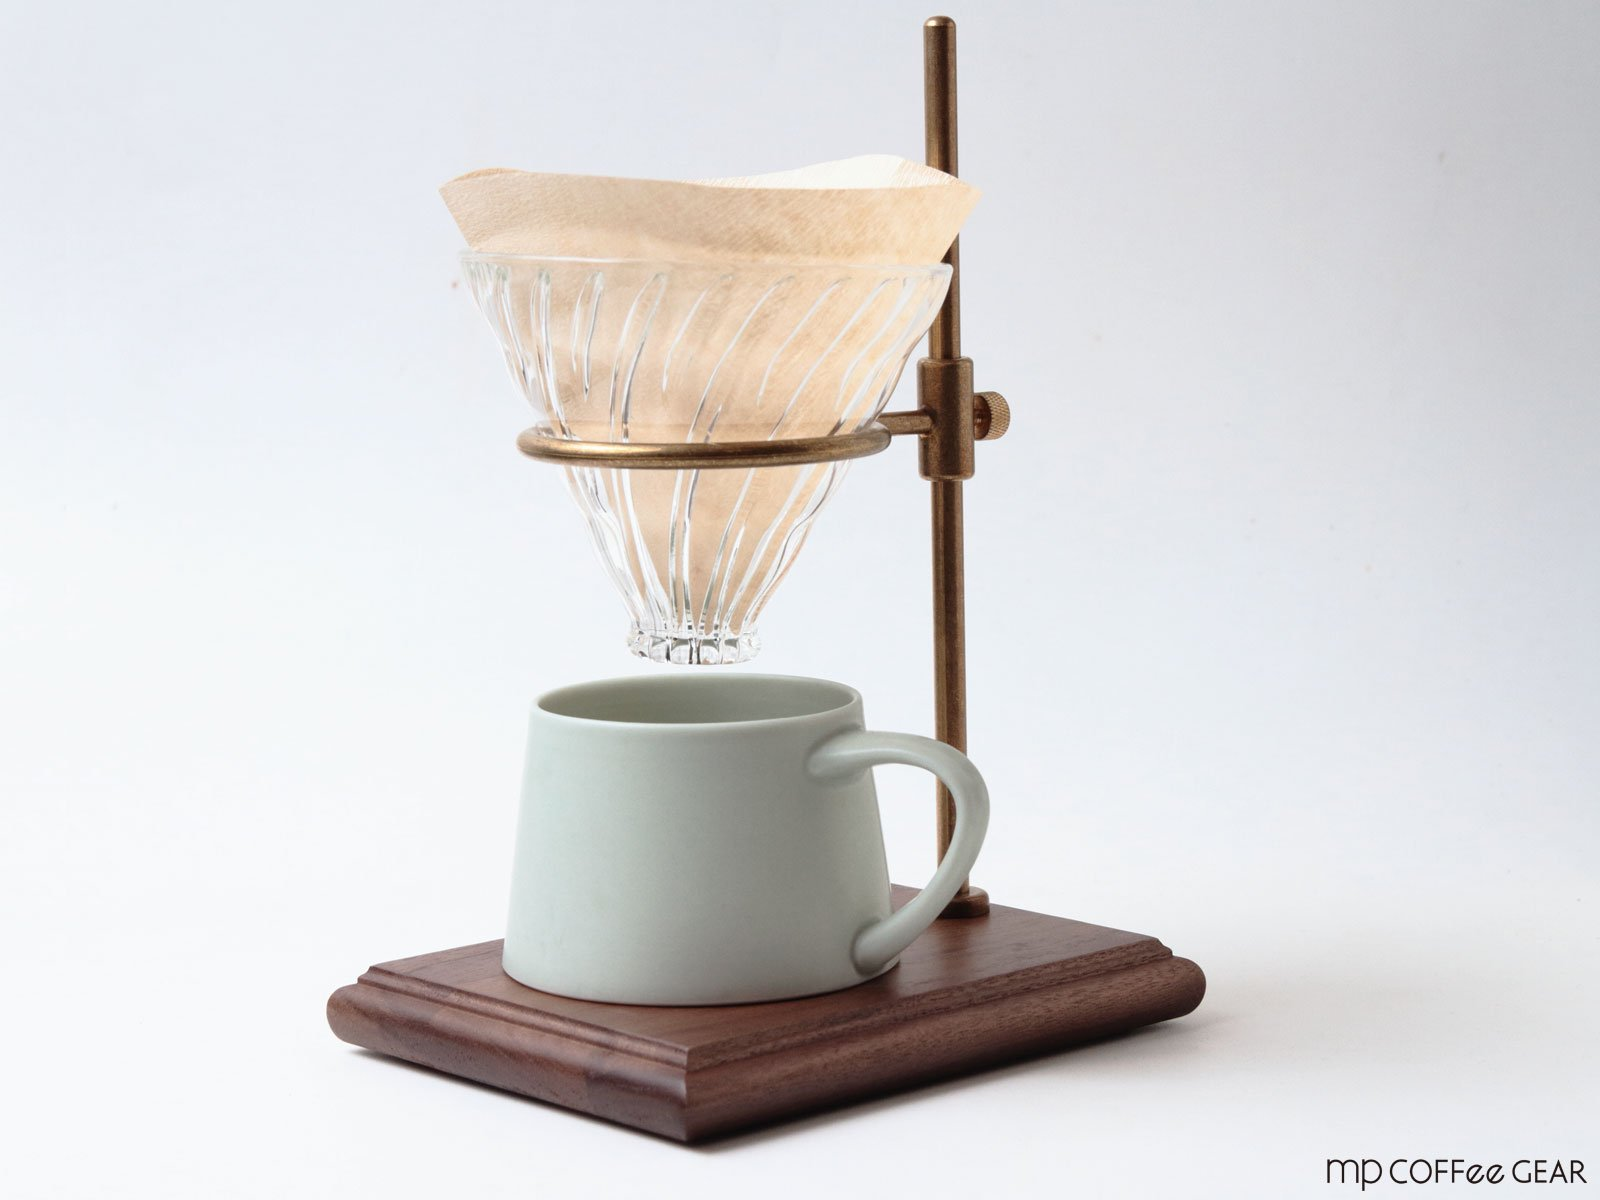 mp coffee gear ブリュワースタンド SPECIALTY02 KINTO(キントー)<img class='new_mark_img2' src='https://img.shop-pro.jp/img/new/icons1.gif' style='border:none;display:inline;margin:0px;padding:0px;width:auto;' />